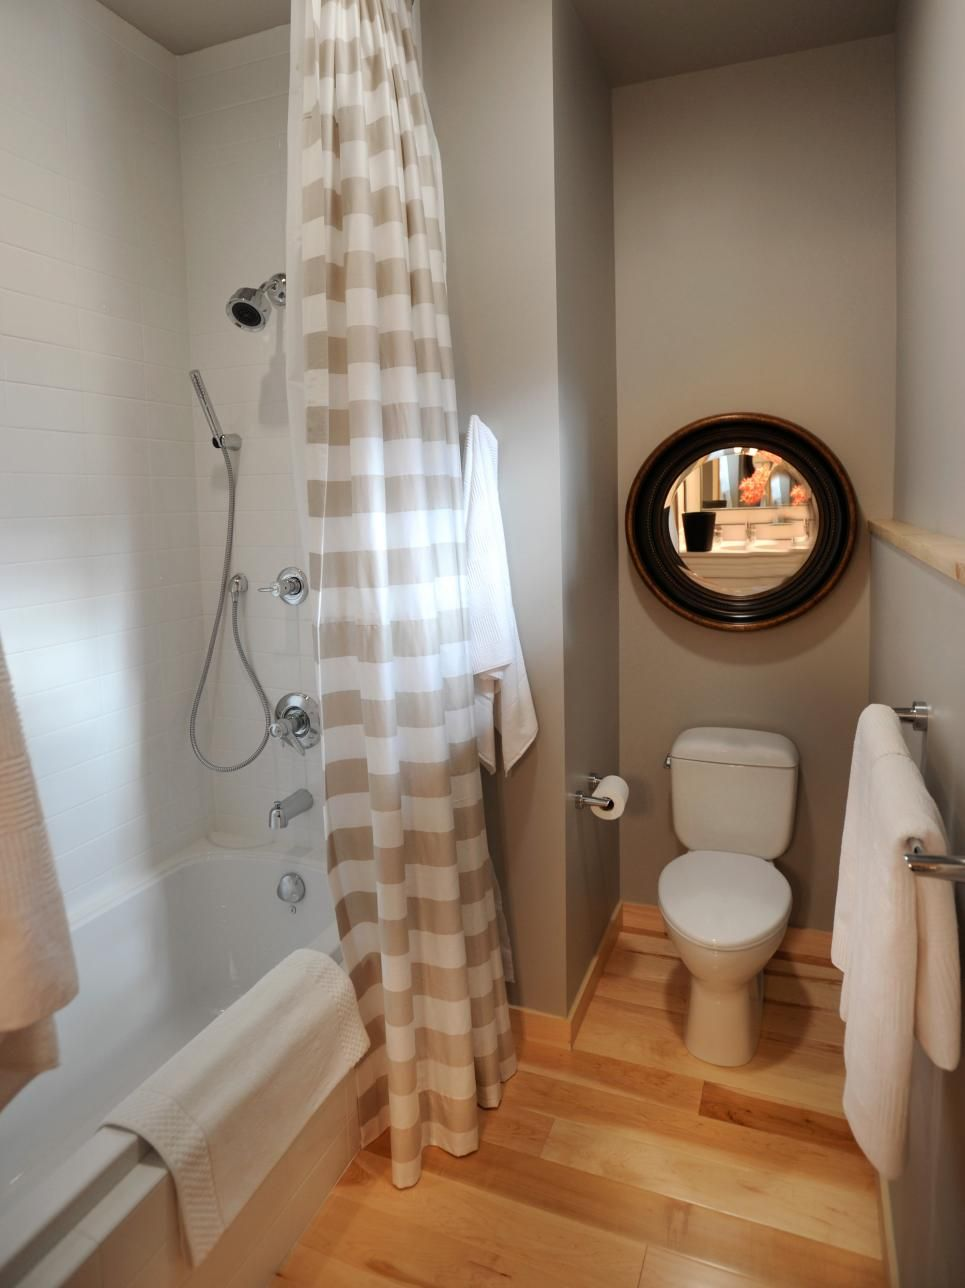 20 Ways To Add Value To Your Home Guest Bathrooms Home Add A Bathroom